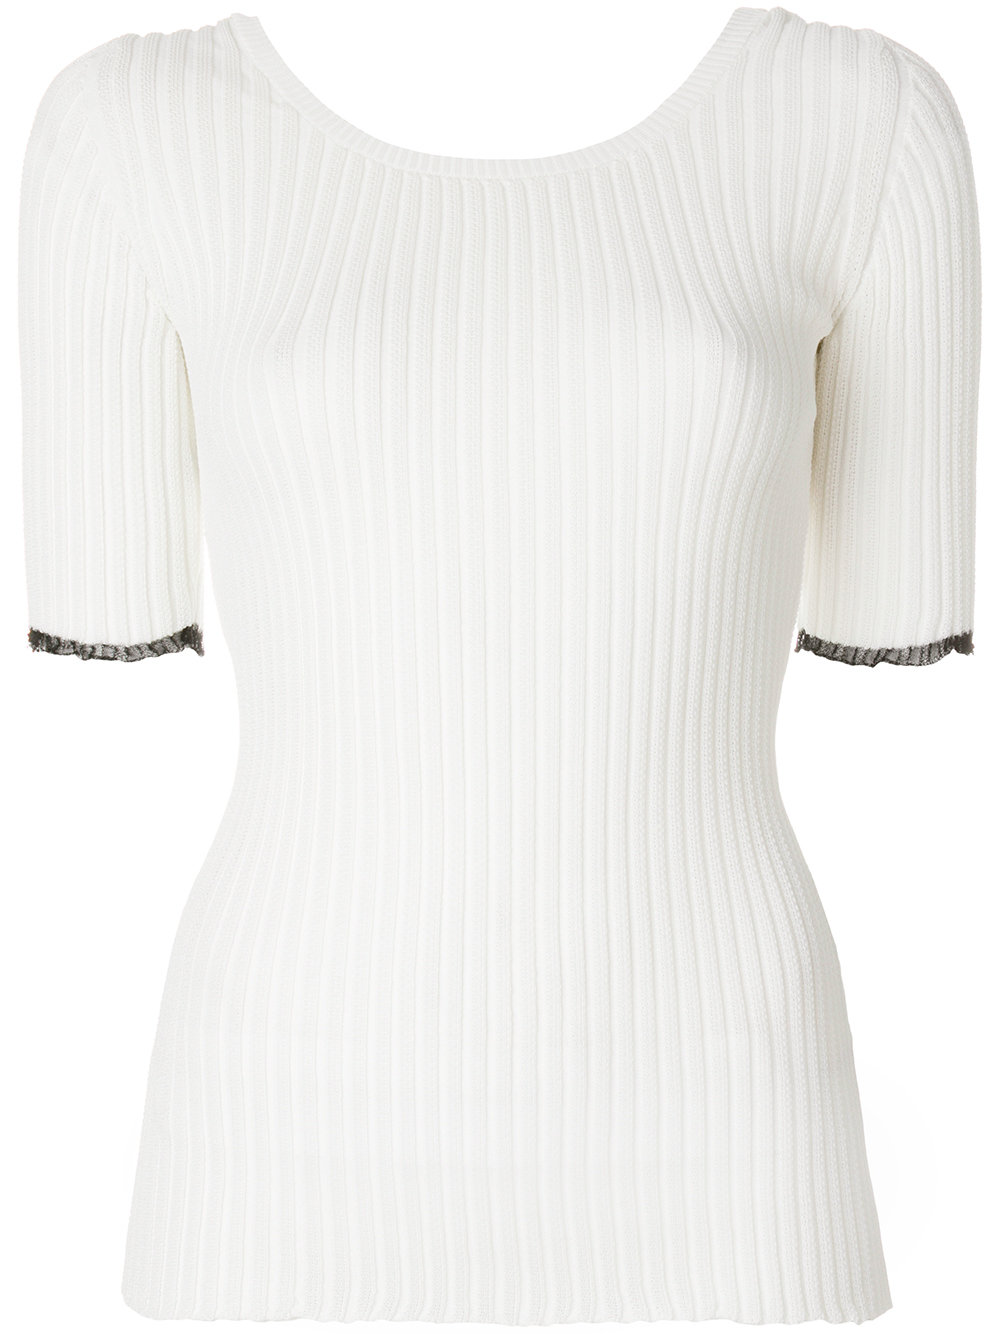 Proenza Schouler KNIT TOP